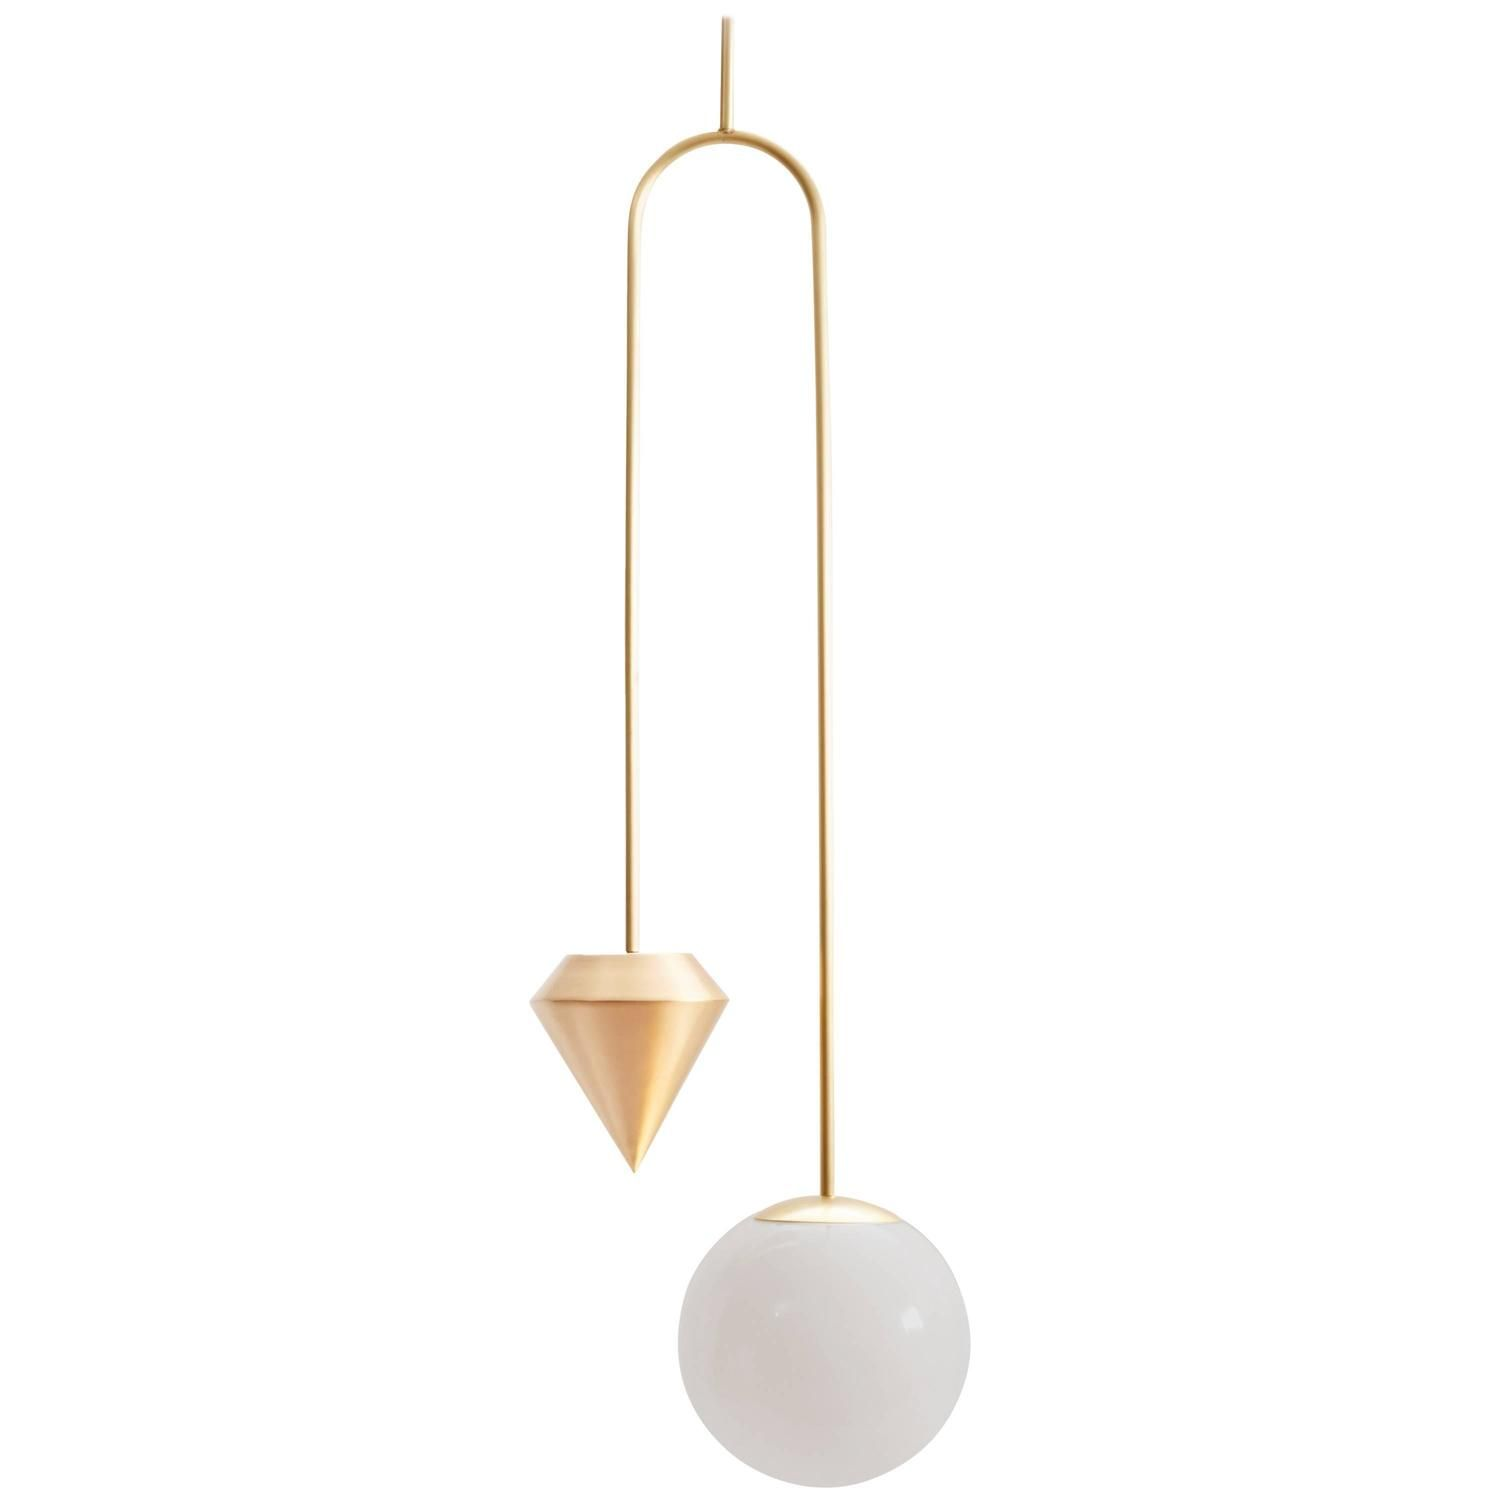 brass globe pendant light. Anna Karlin Short Plumb Brass Pendant Light With Glass Globe D